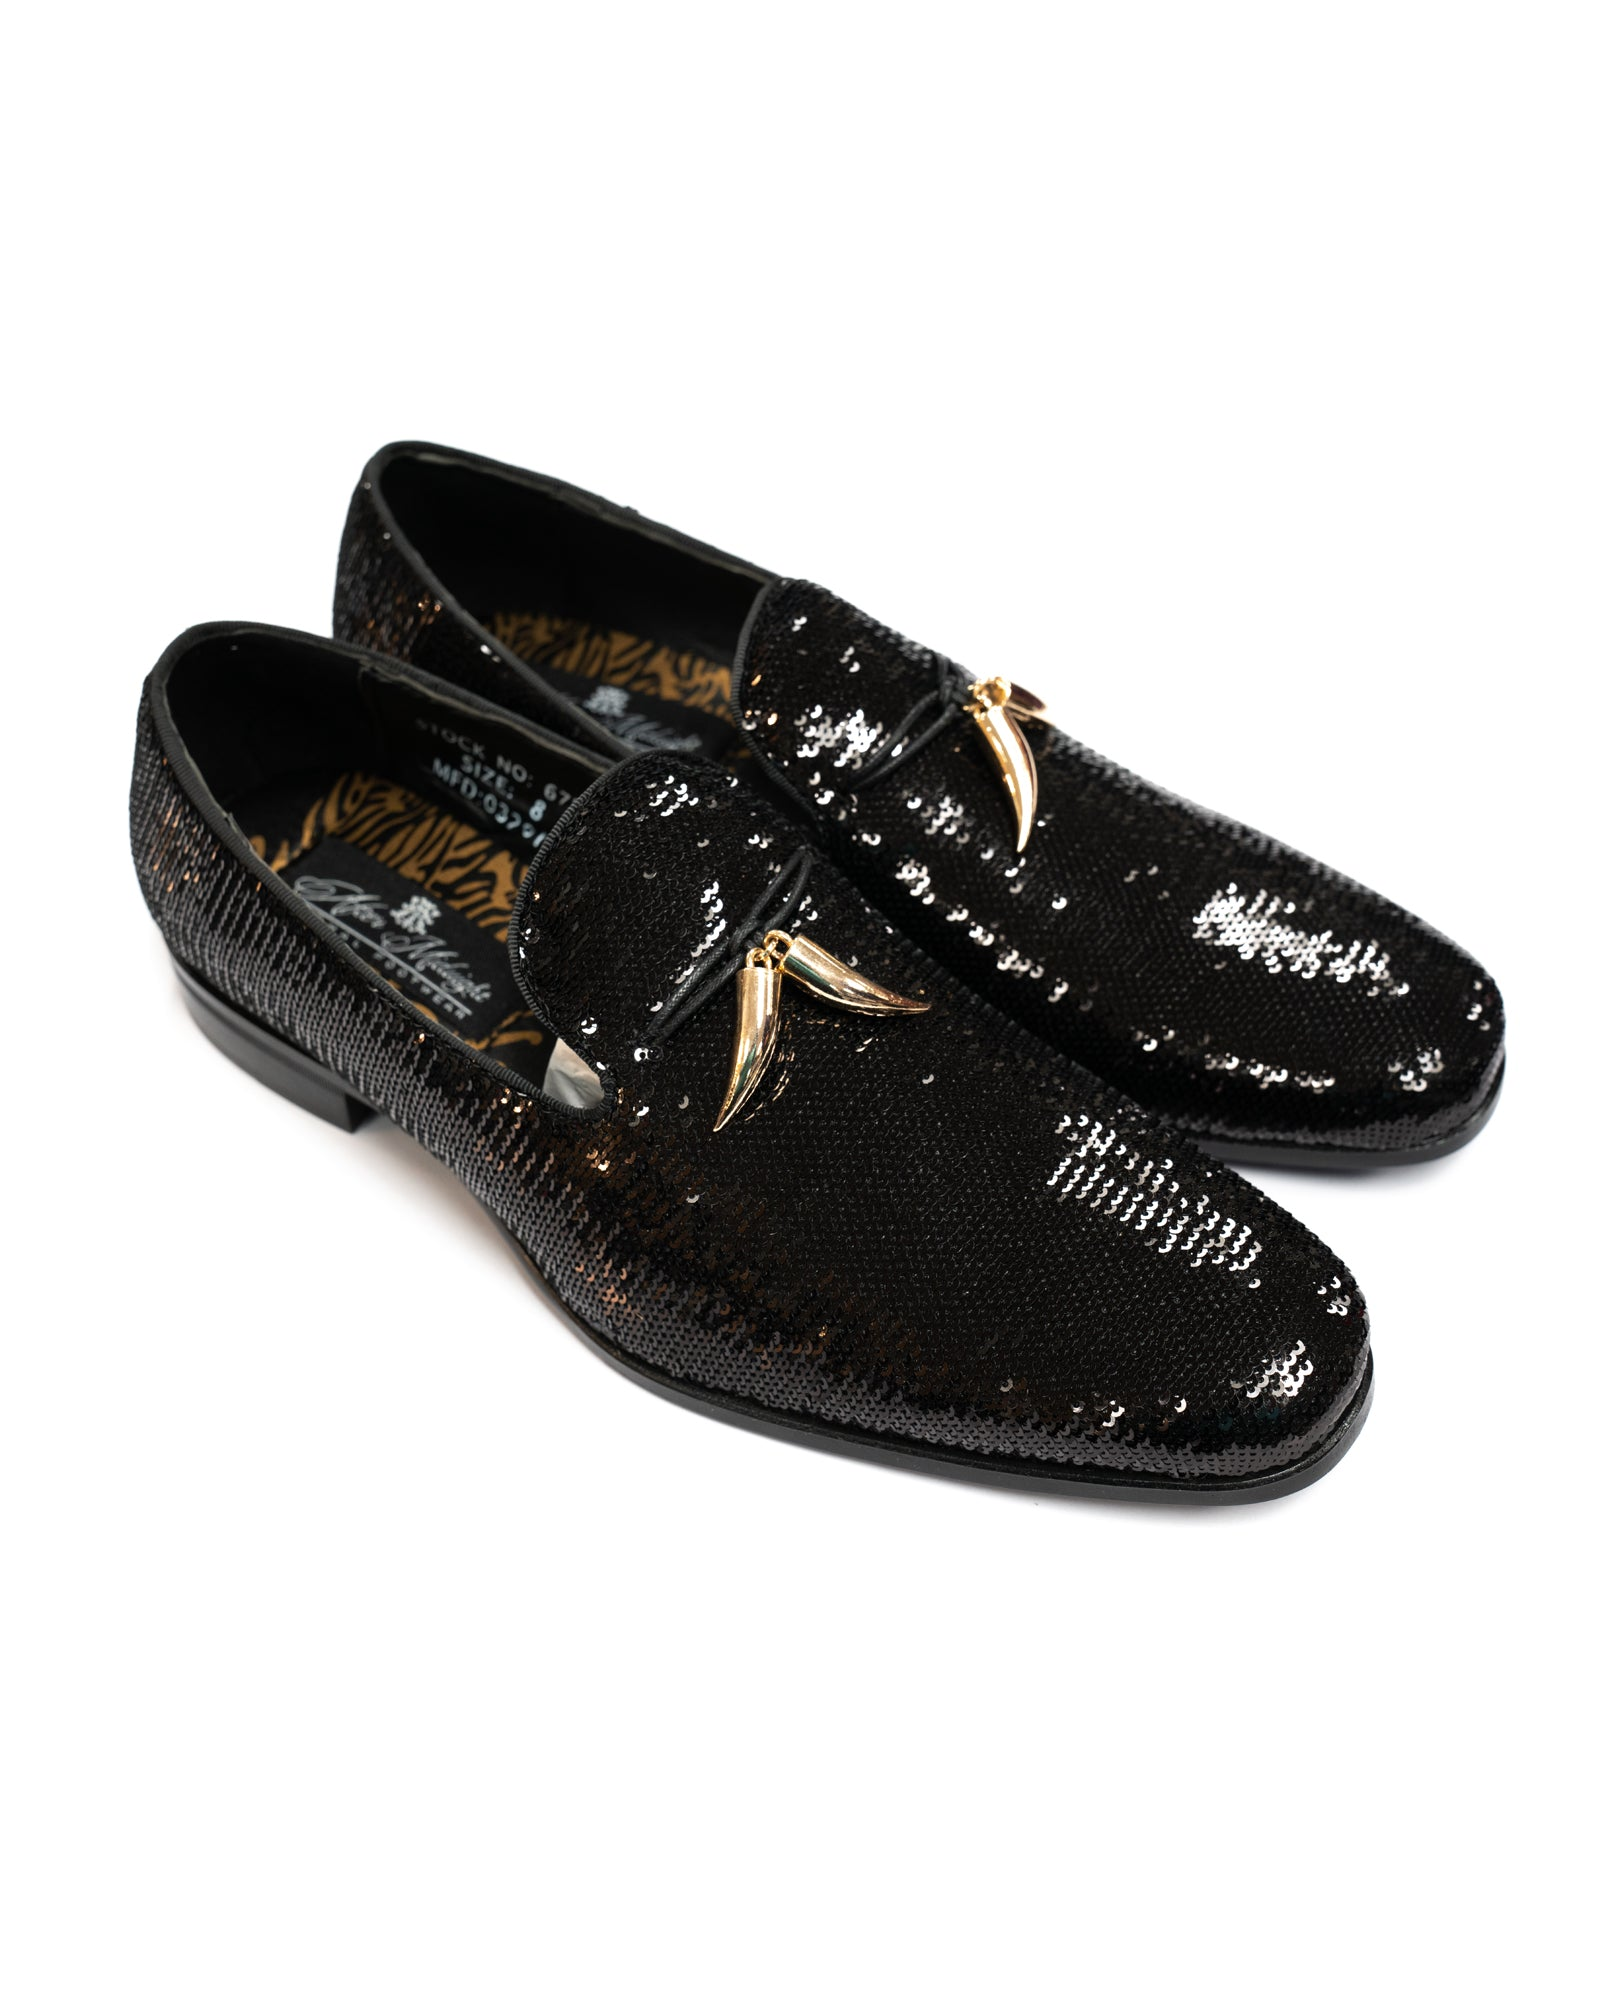 After Midnight Tassel Sequin Formal Loafer in Black - Rainwater's Men's Clothing and Tuxedo Rental